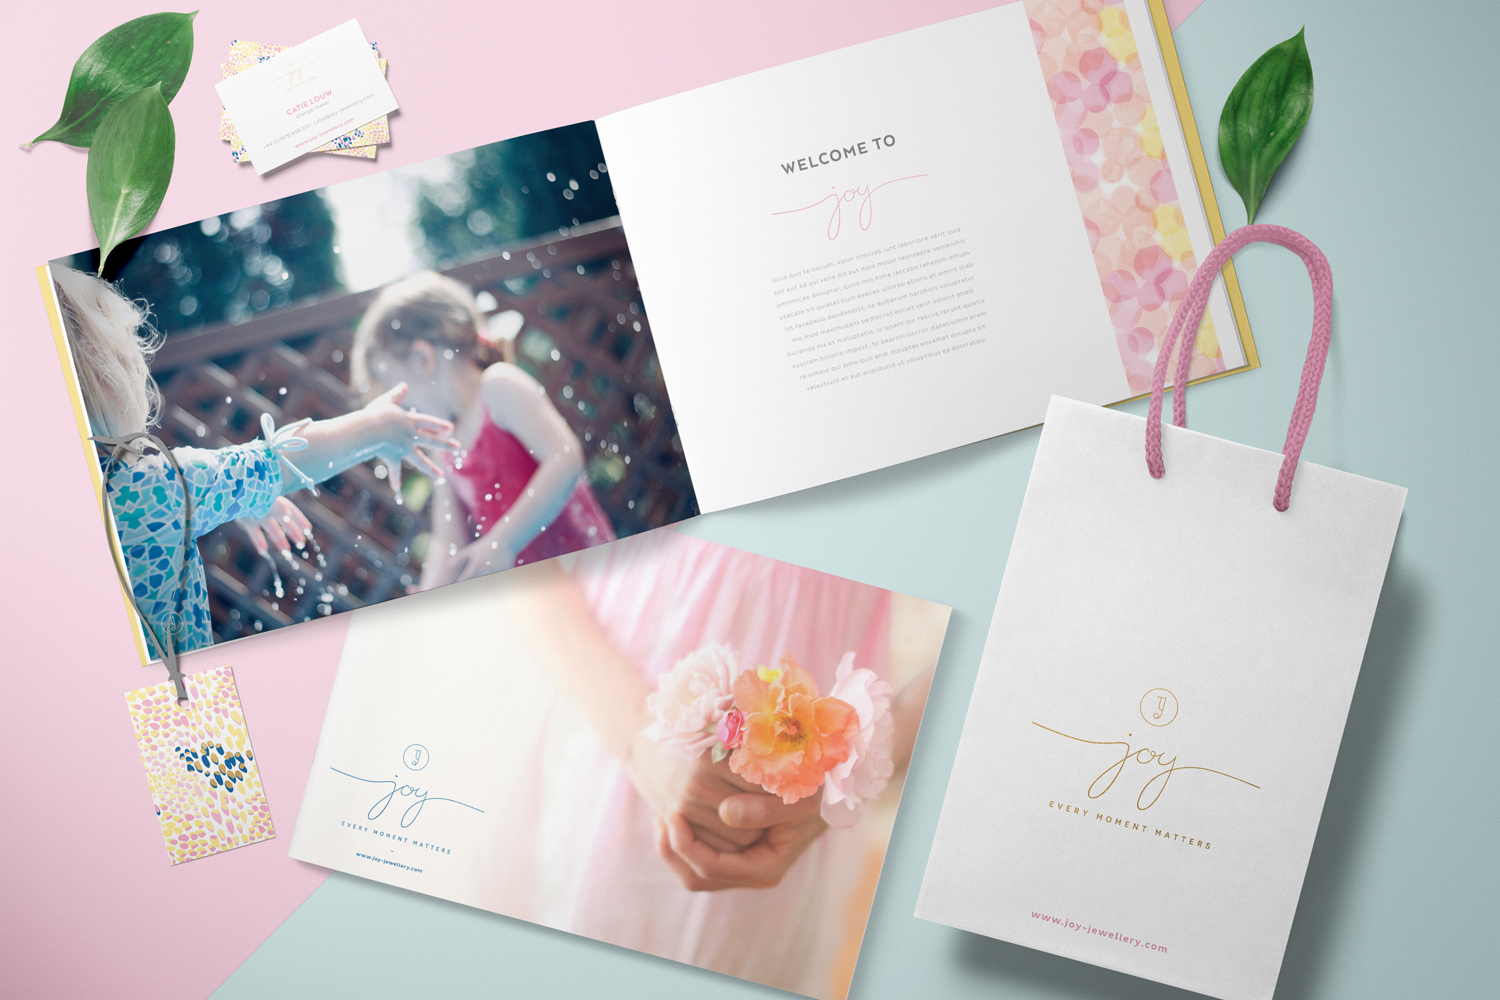 Brand consultancy, branding, logo design for startup business Joy Jewellery, jewellery brand in South Africa. Brand design by Ditto Creative, branding agency in Kent specialising in branding for small businesses